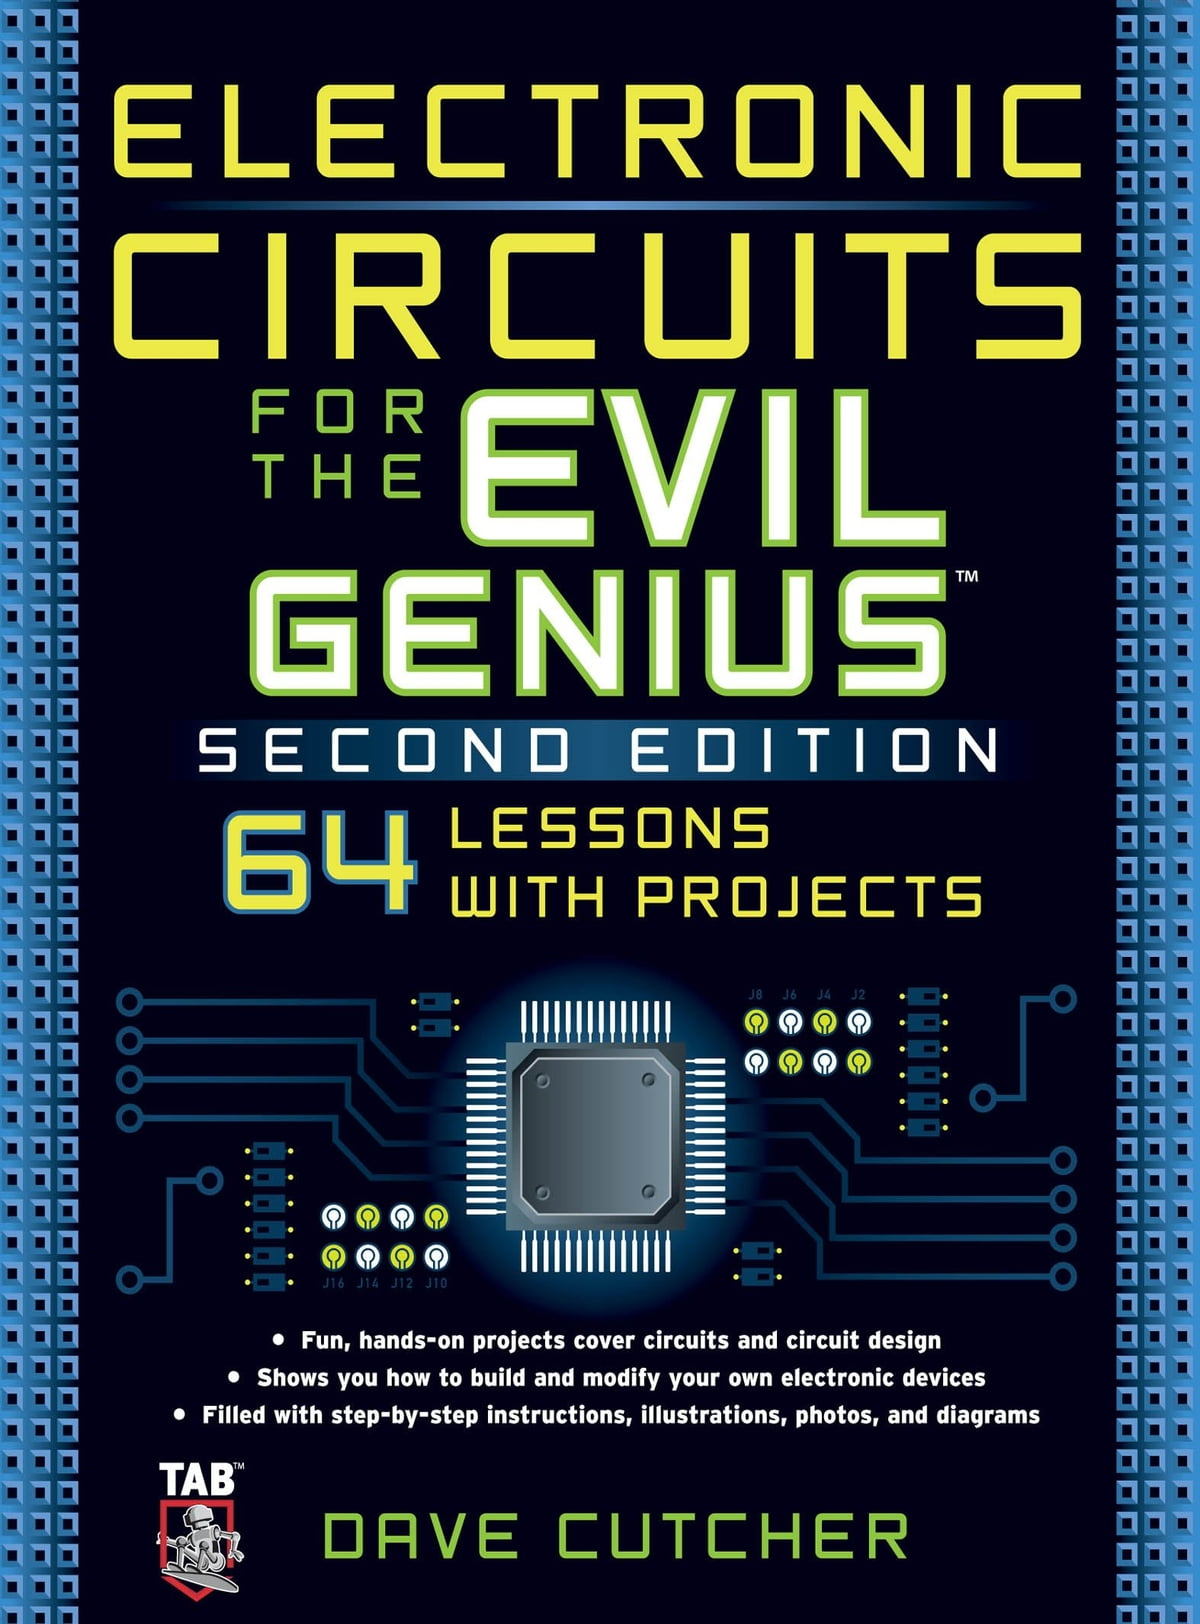 Electronic Circuits For The Evil Genius 2 E Ebook By Dave Cutcher Projects Beginners 9780071744133 Rakuten Kobo